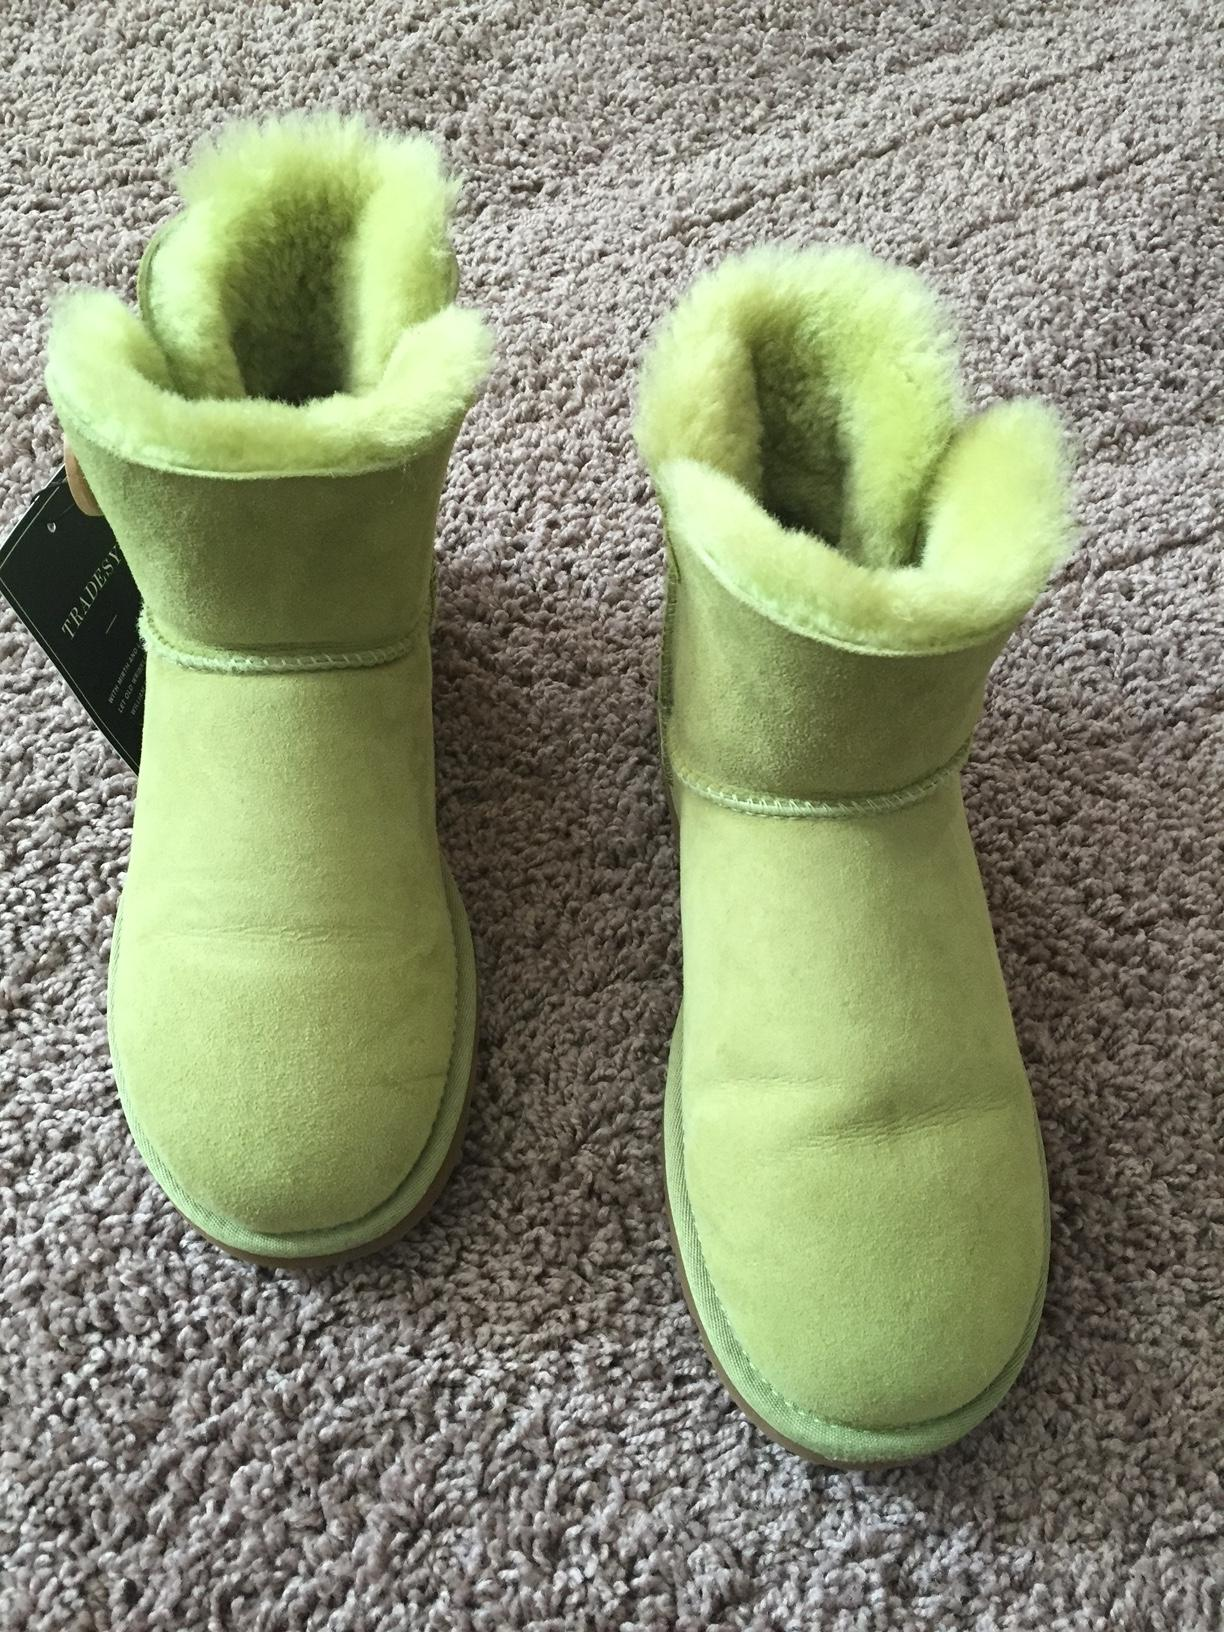 UGG Australia Casual Suede Lime green Boots ...